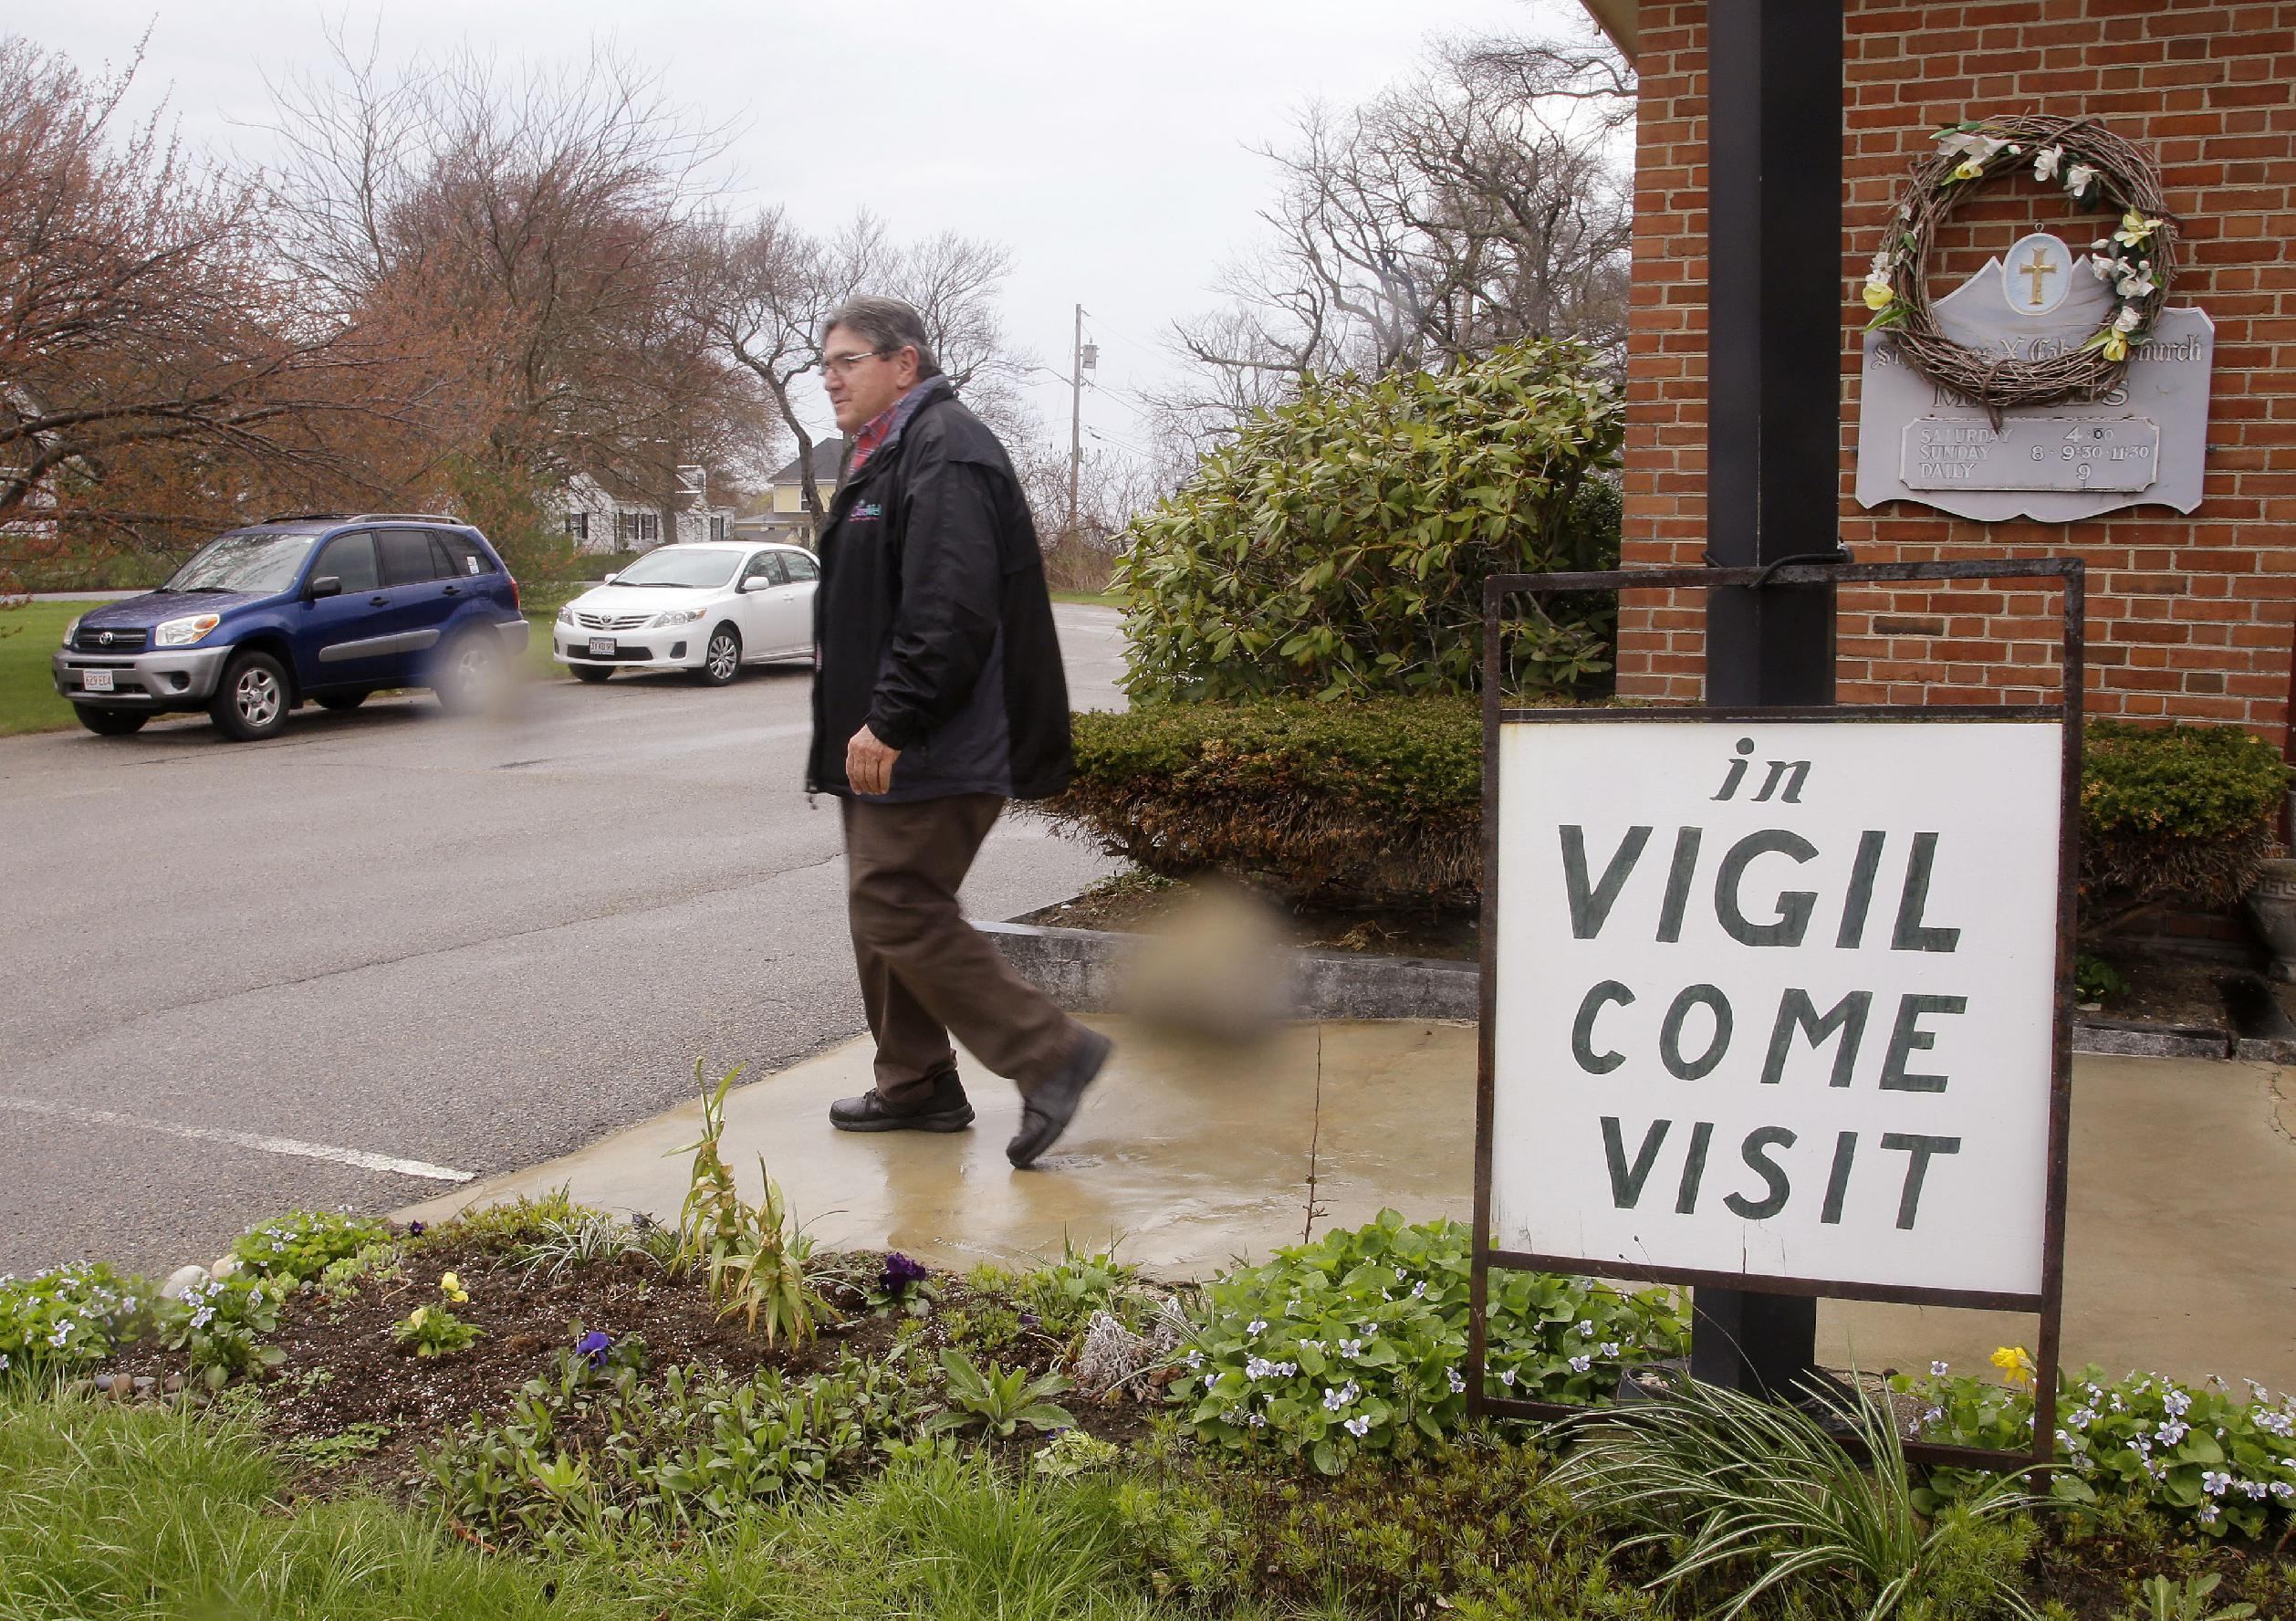 Parishioners appealing judge's order to vacate closed church